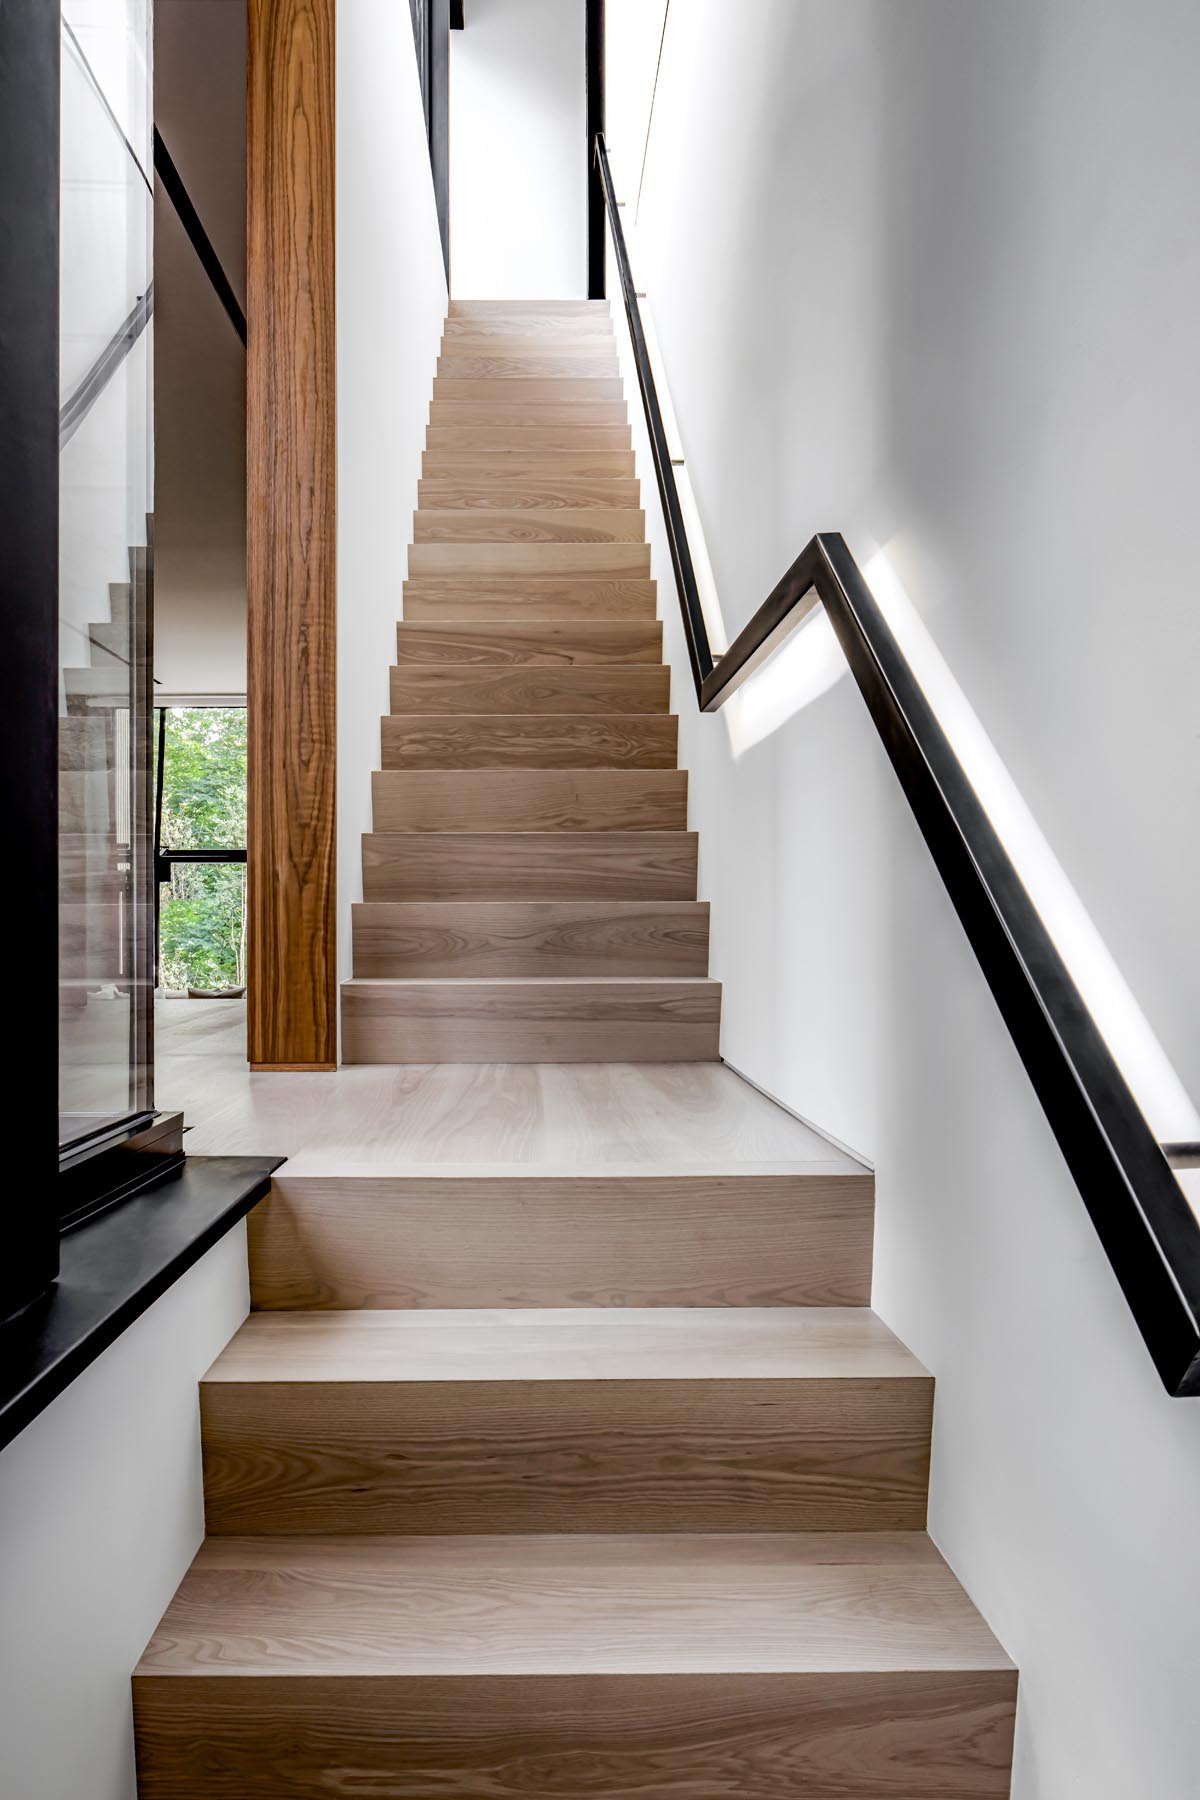 Wood stairs connect the various levels of this modern home, with a black handrail that contrasts the white wall.